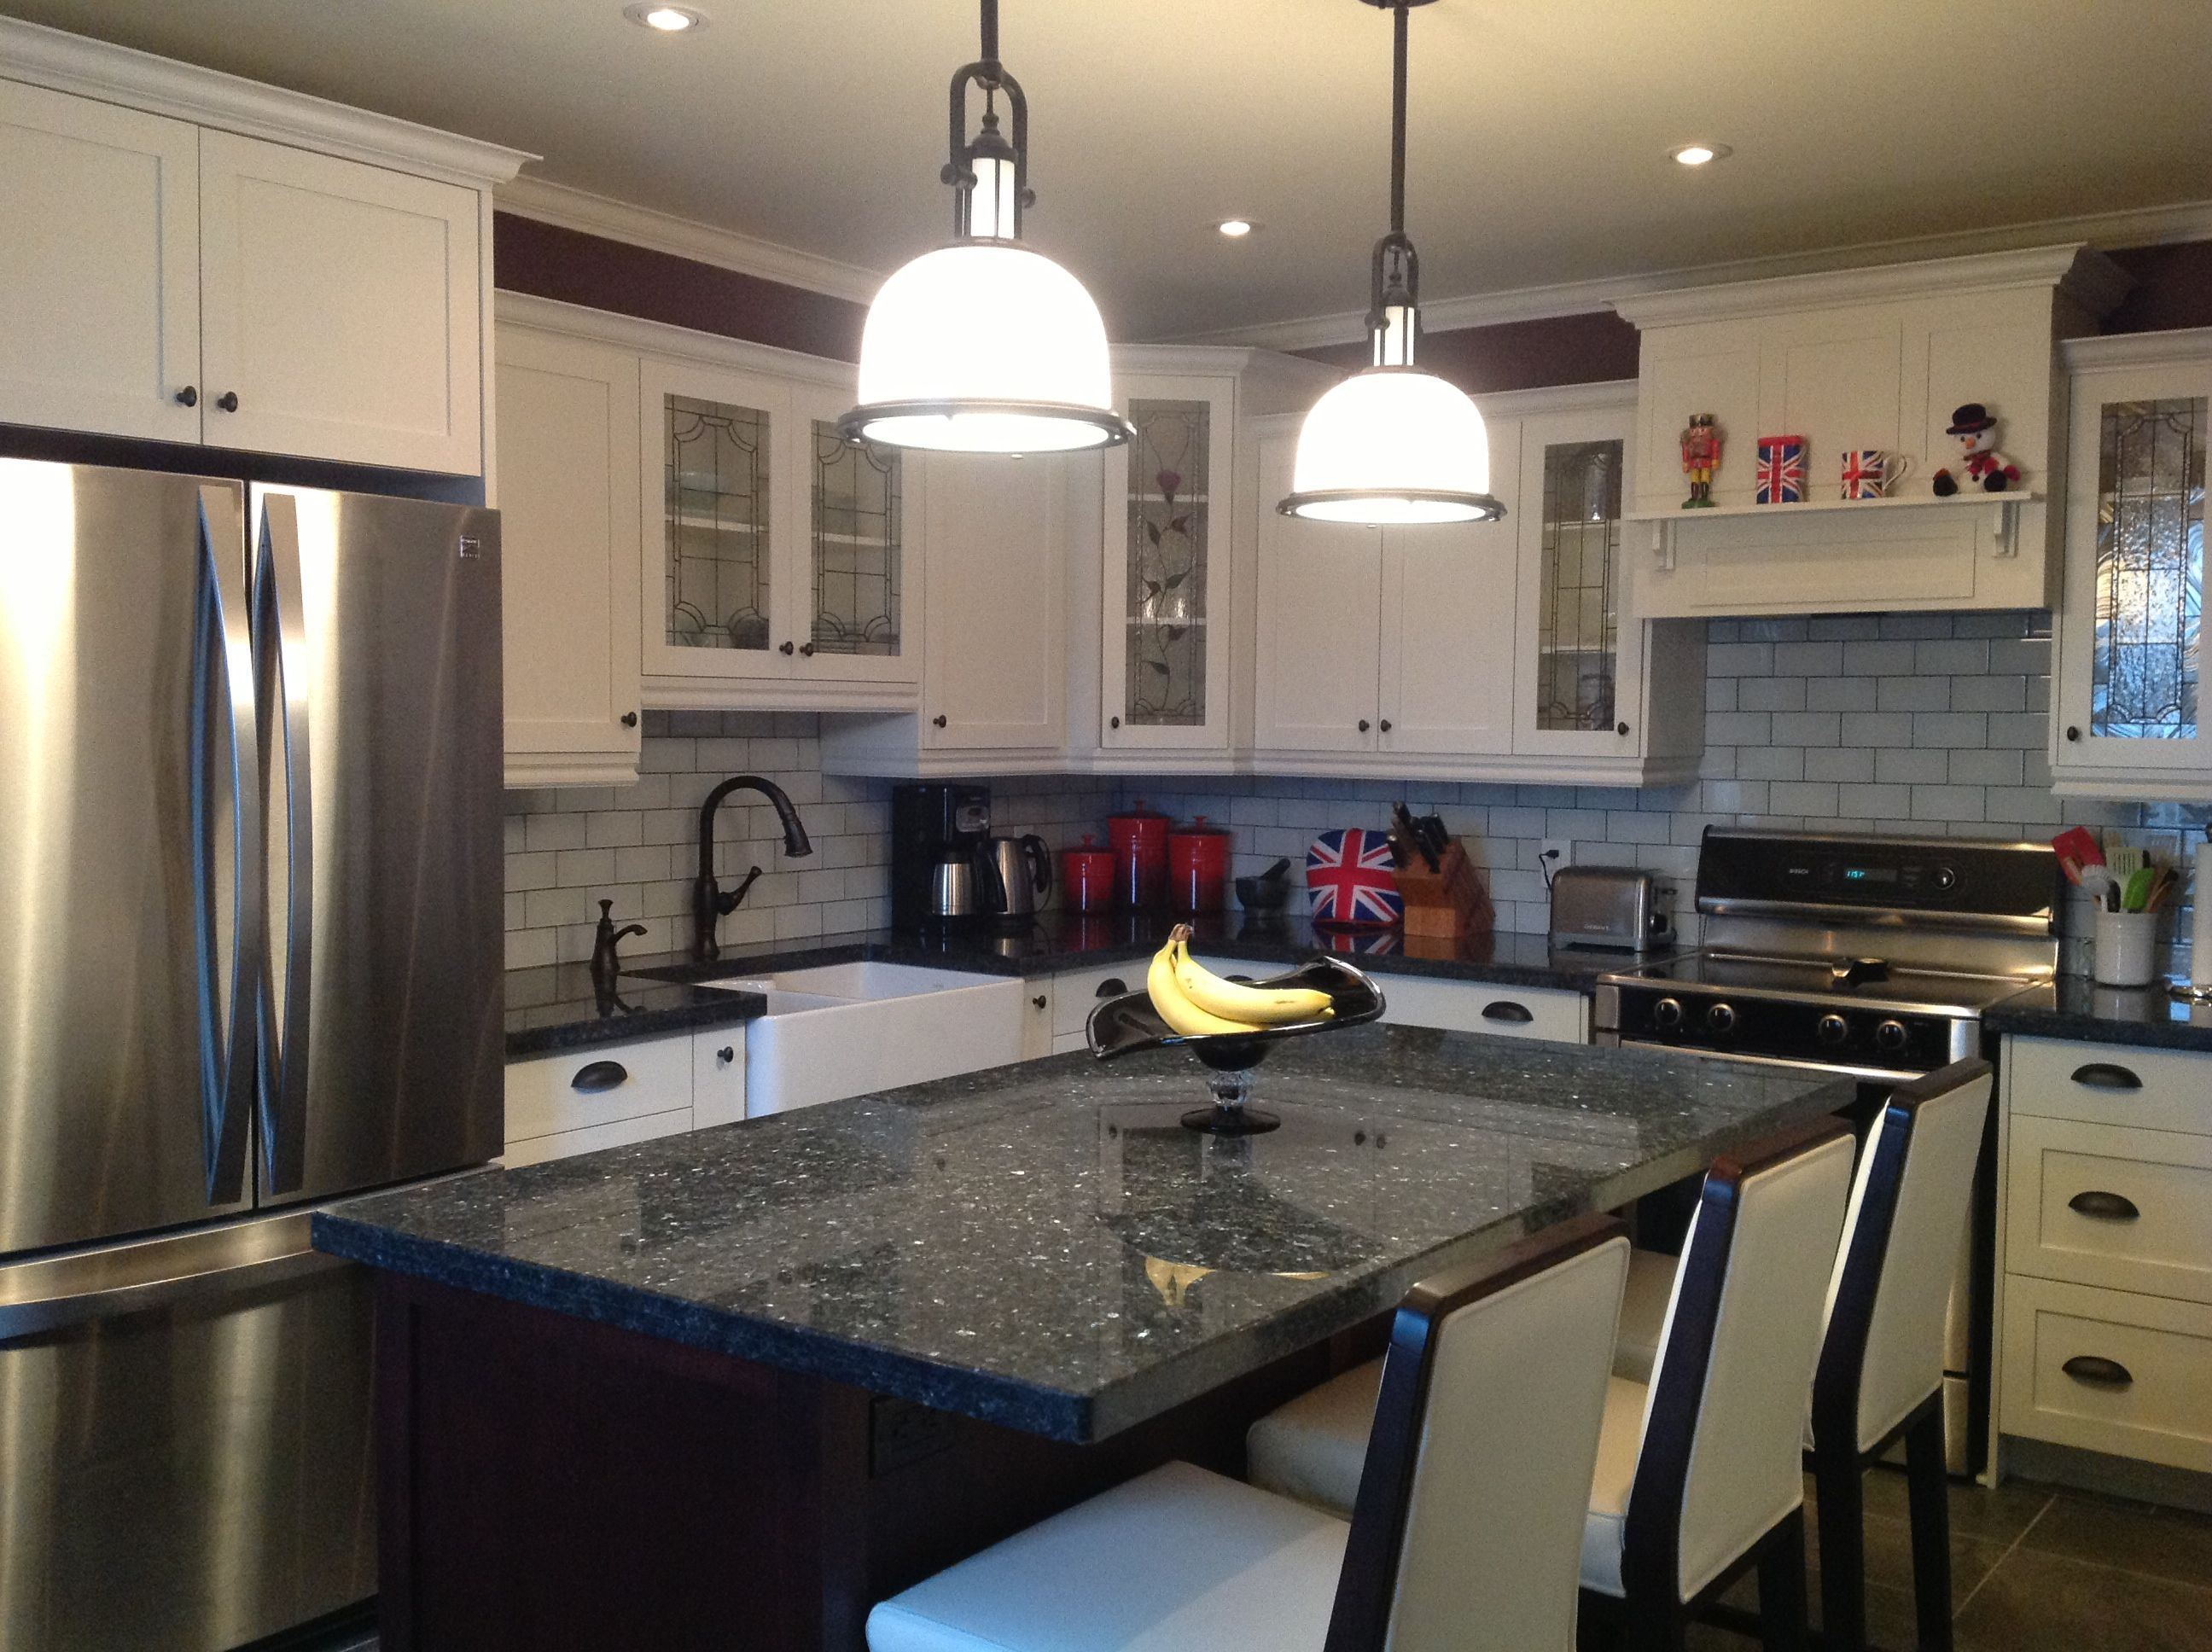 Blue Countertops White Cabinets Blue Pearl Granite Countertop White Bar Stools Pendant